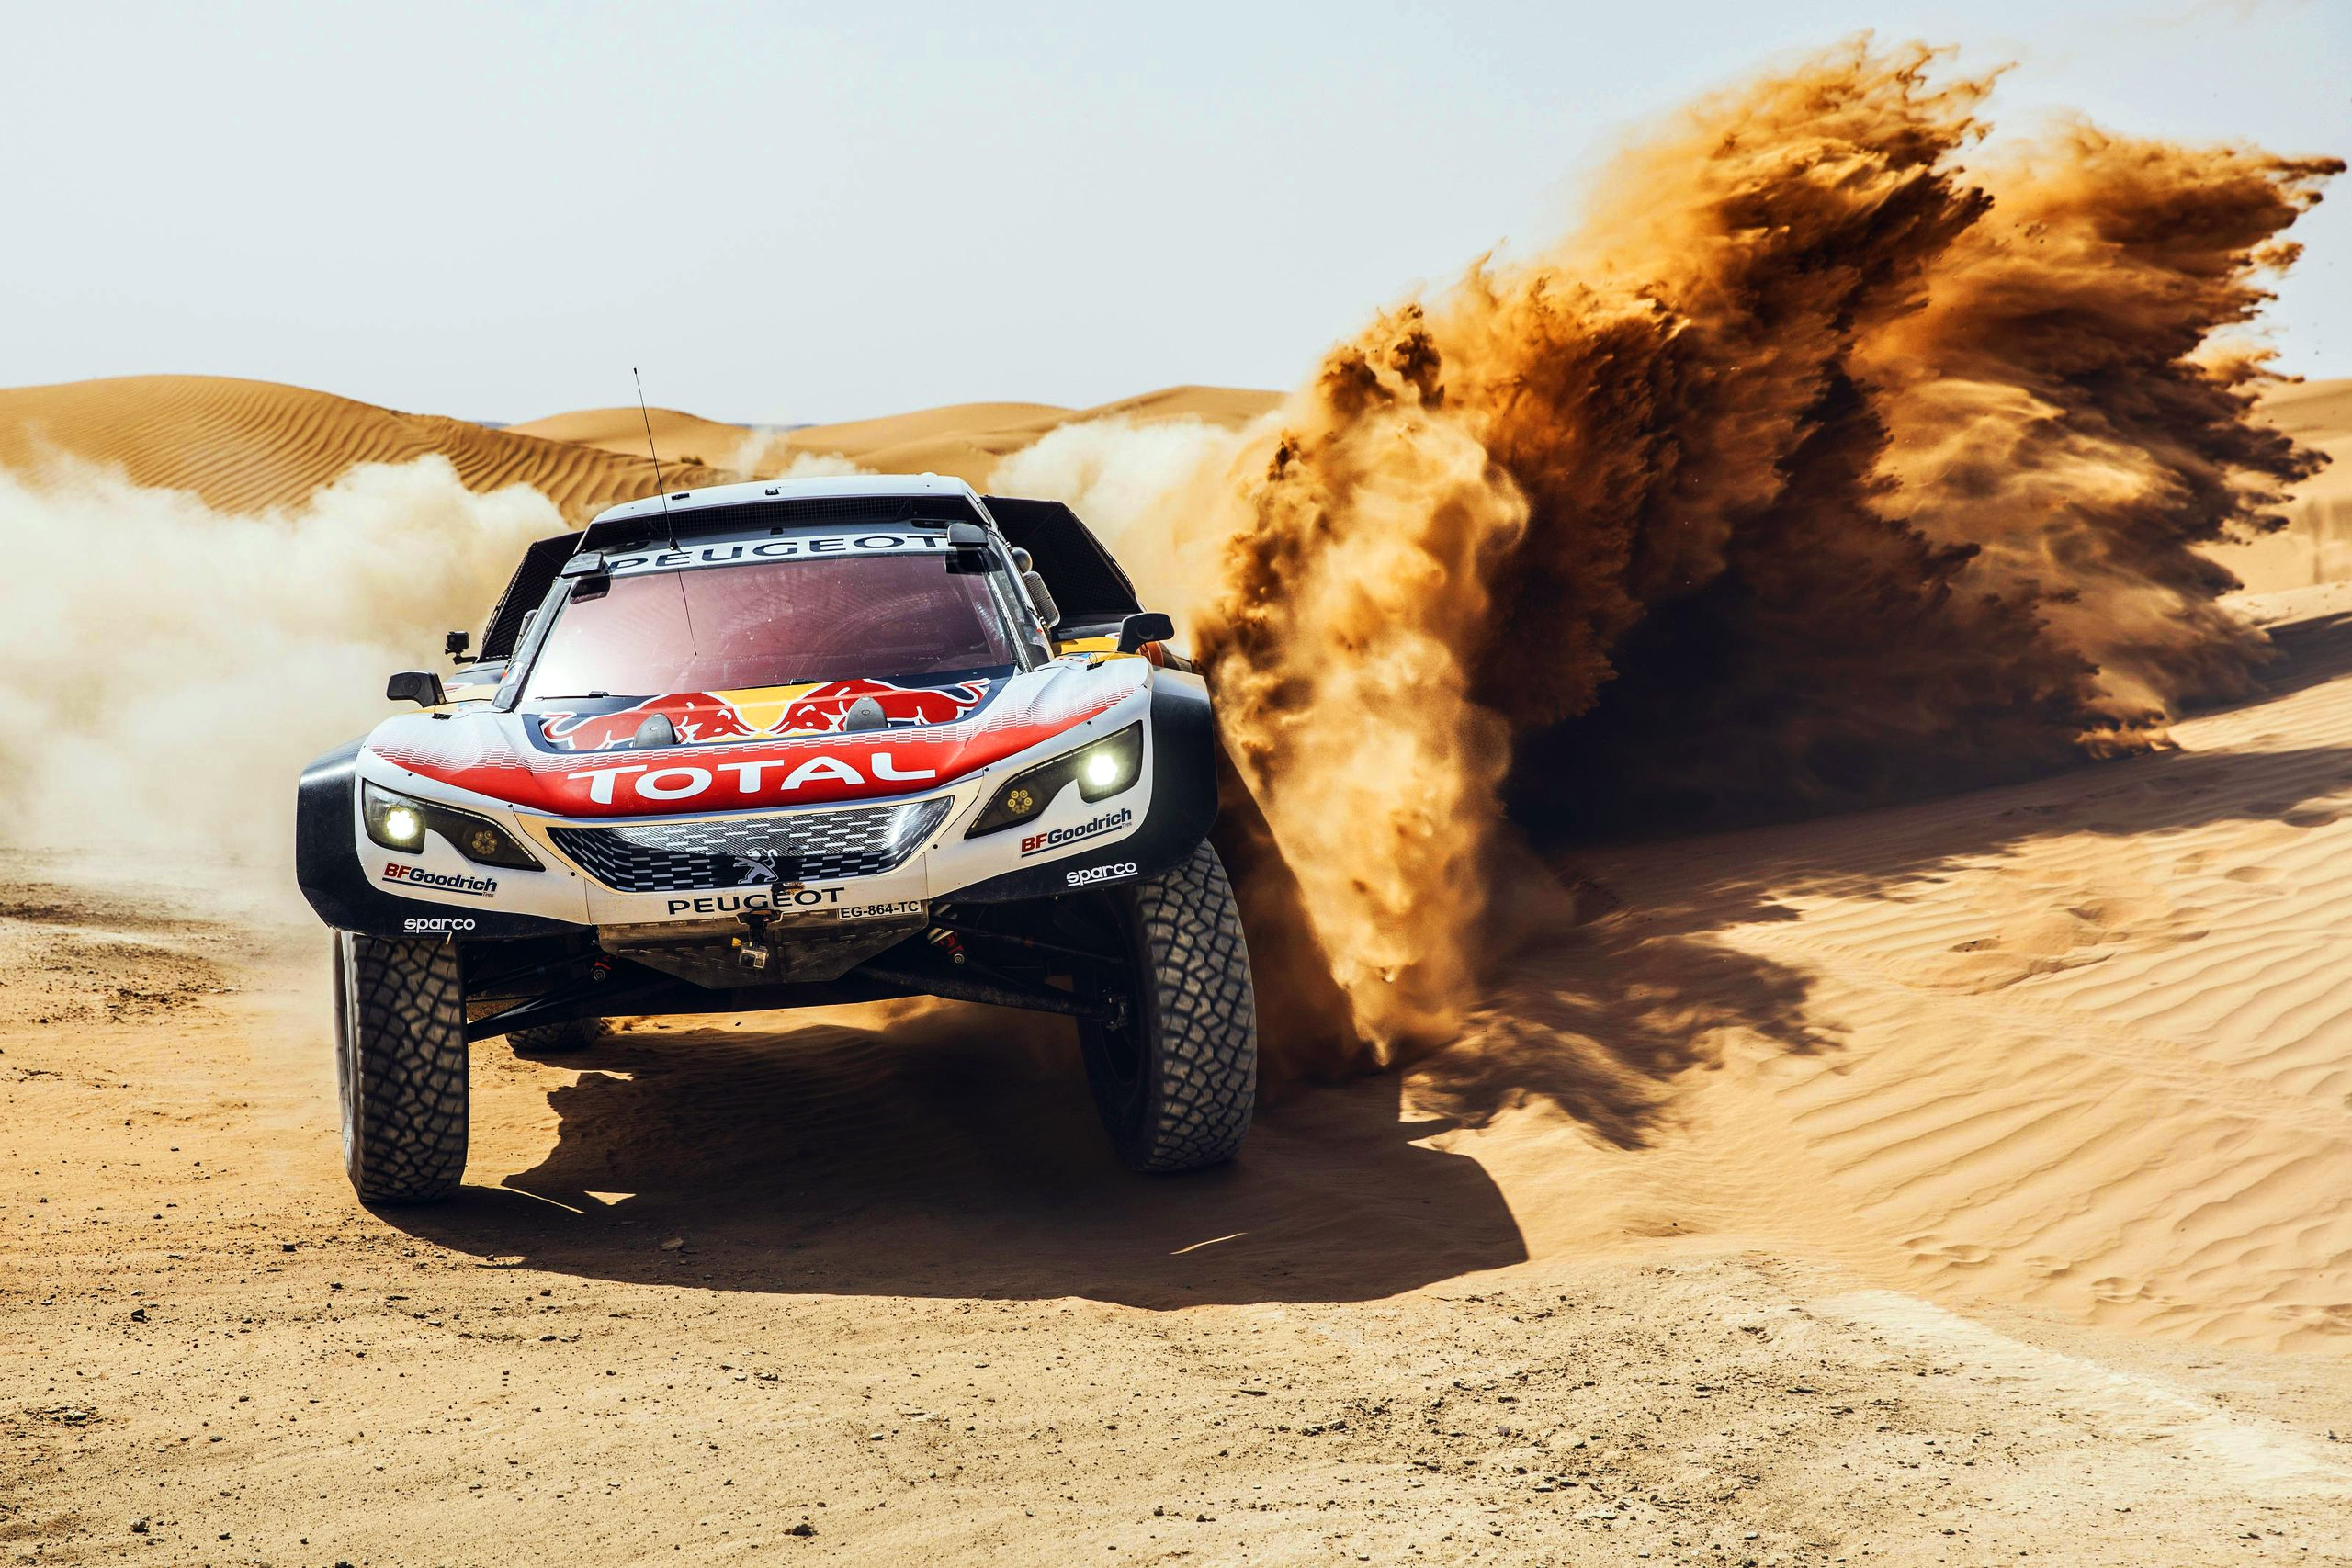 Wallpaper of Car, Desert, Peugeot, RaceCar, Rallying, Sand